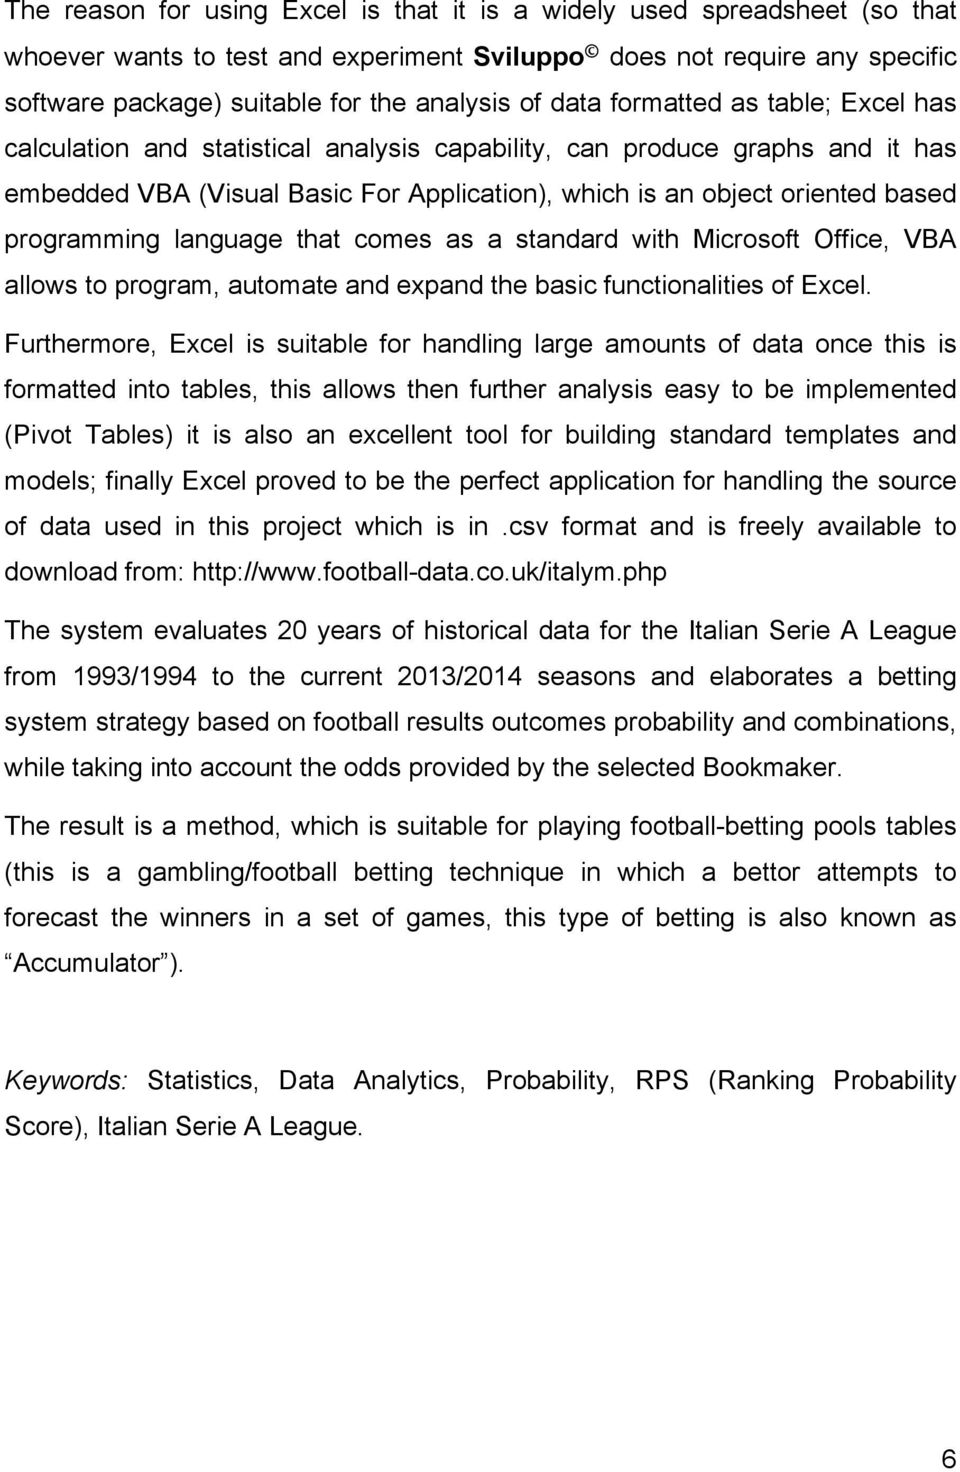 Statistical Data Analytics Of Football For  Beating The Odds